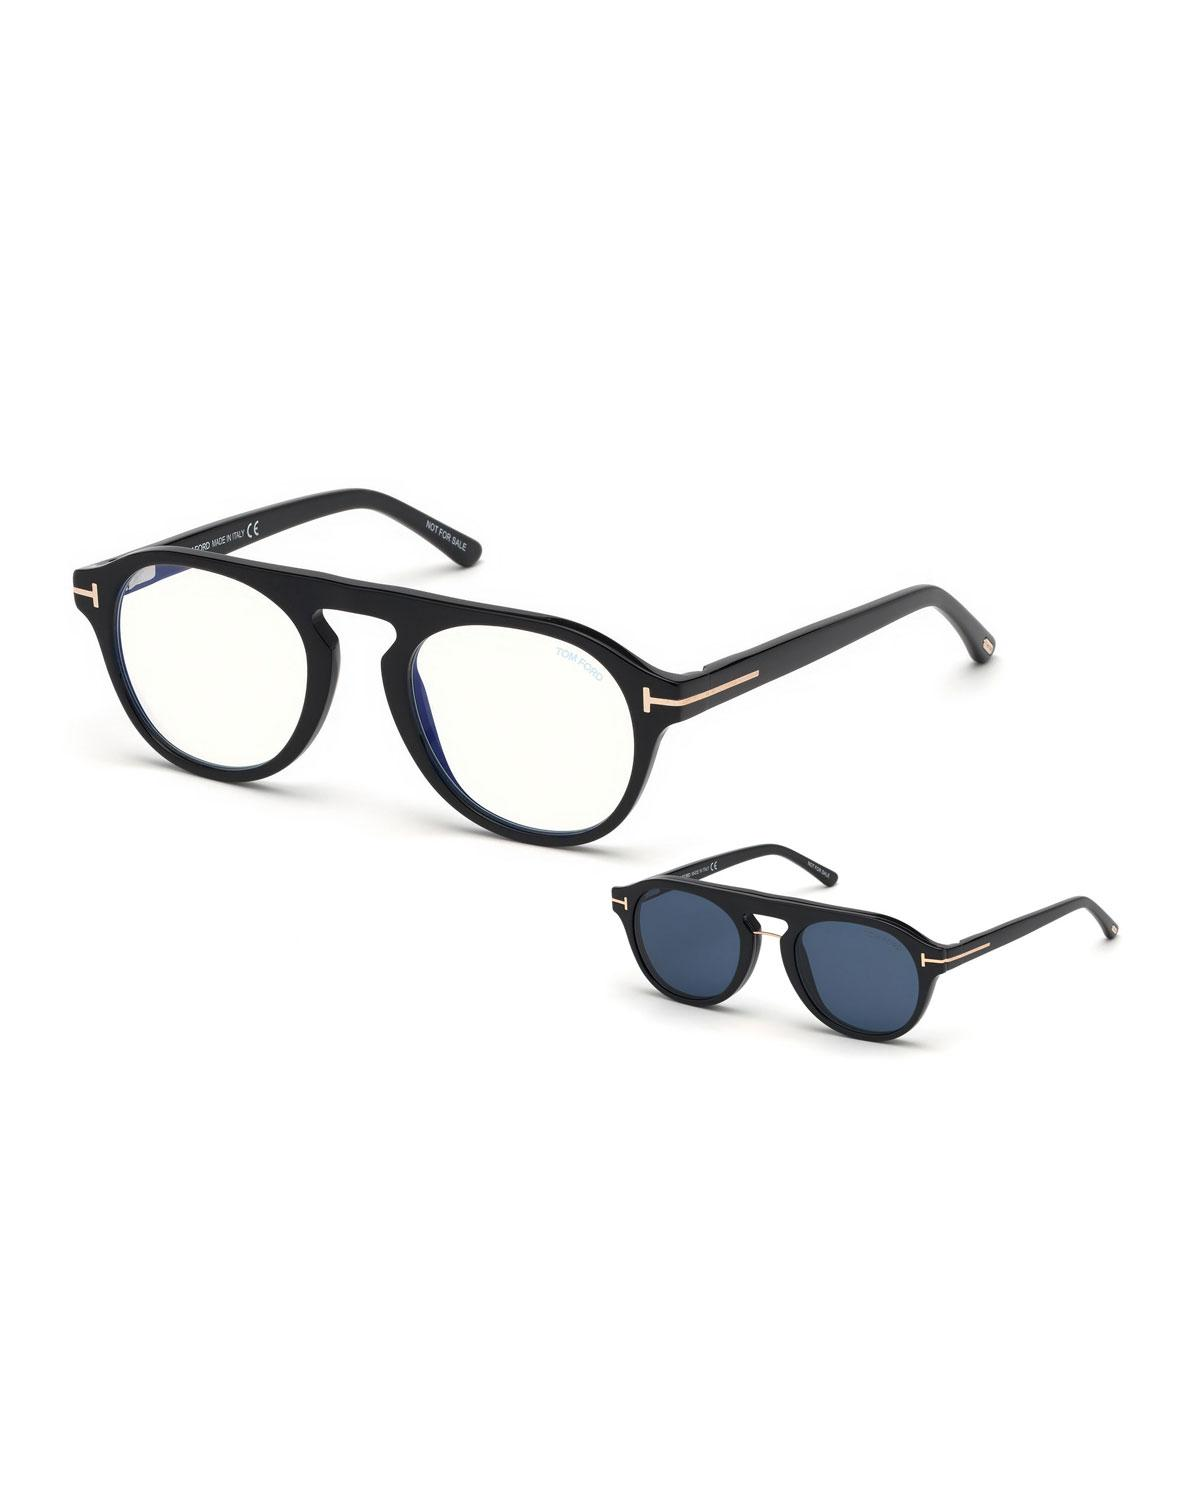 0a52185778 Tom Ford. Black Men s Round Optical Glasses W  Magnetic Clip On Blue-block  Shade